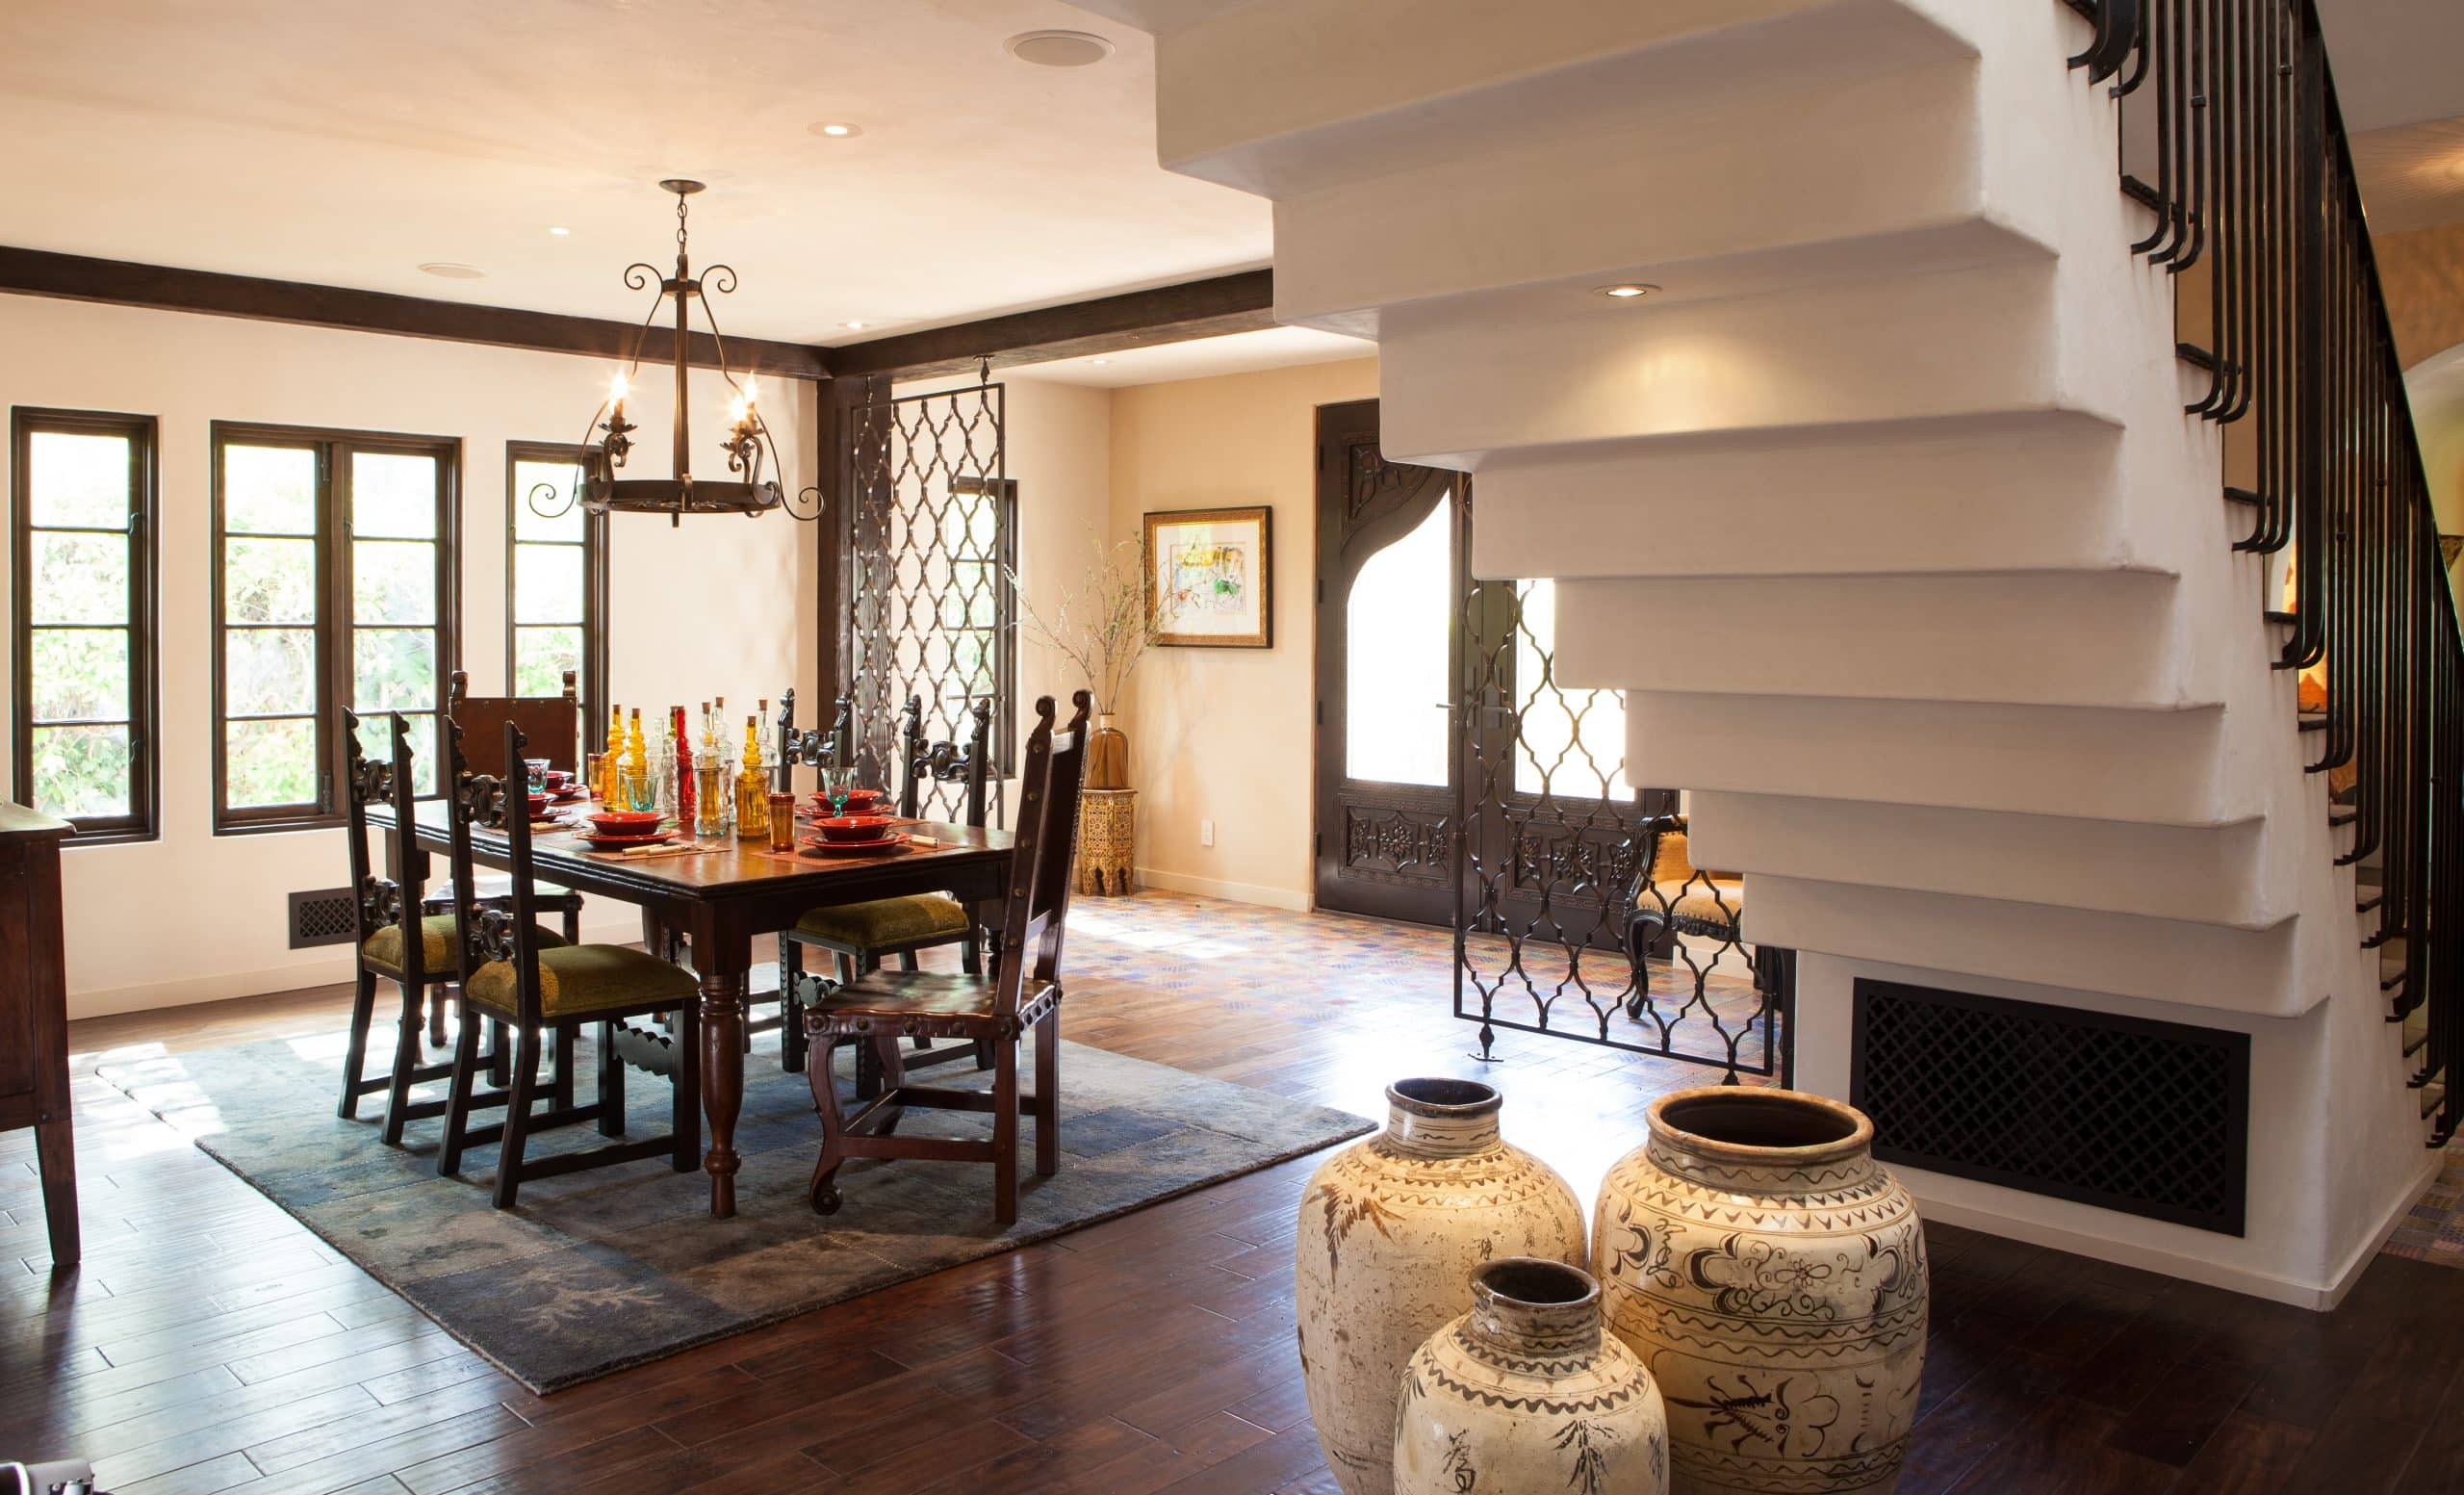 Dining room with exposed staircase, designed by Coulter